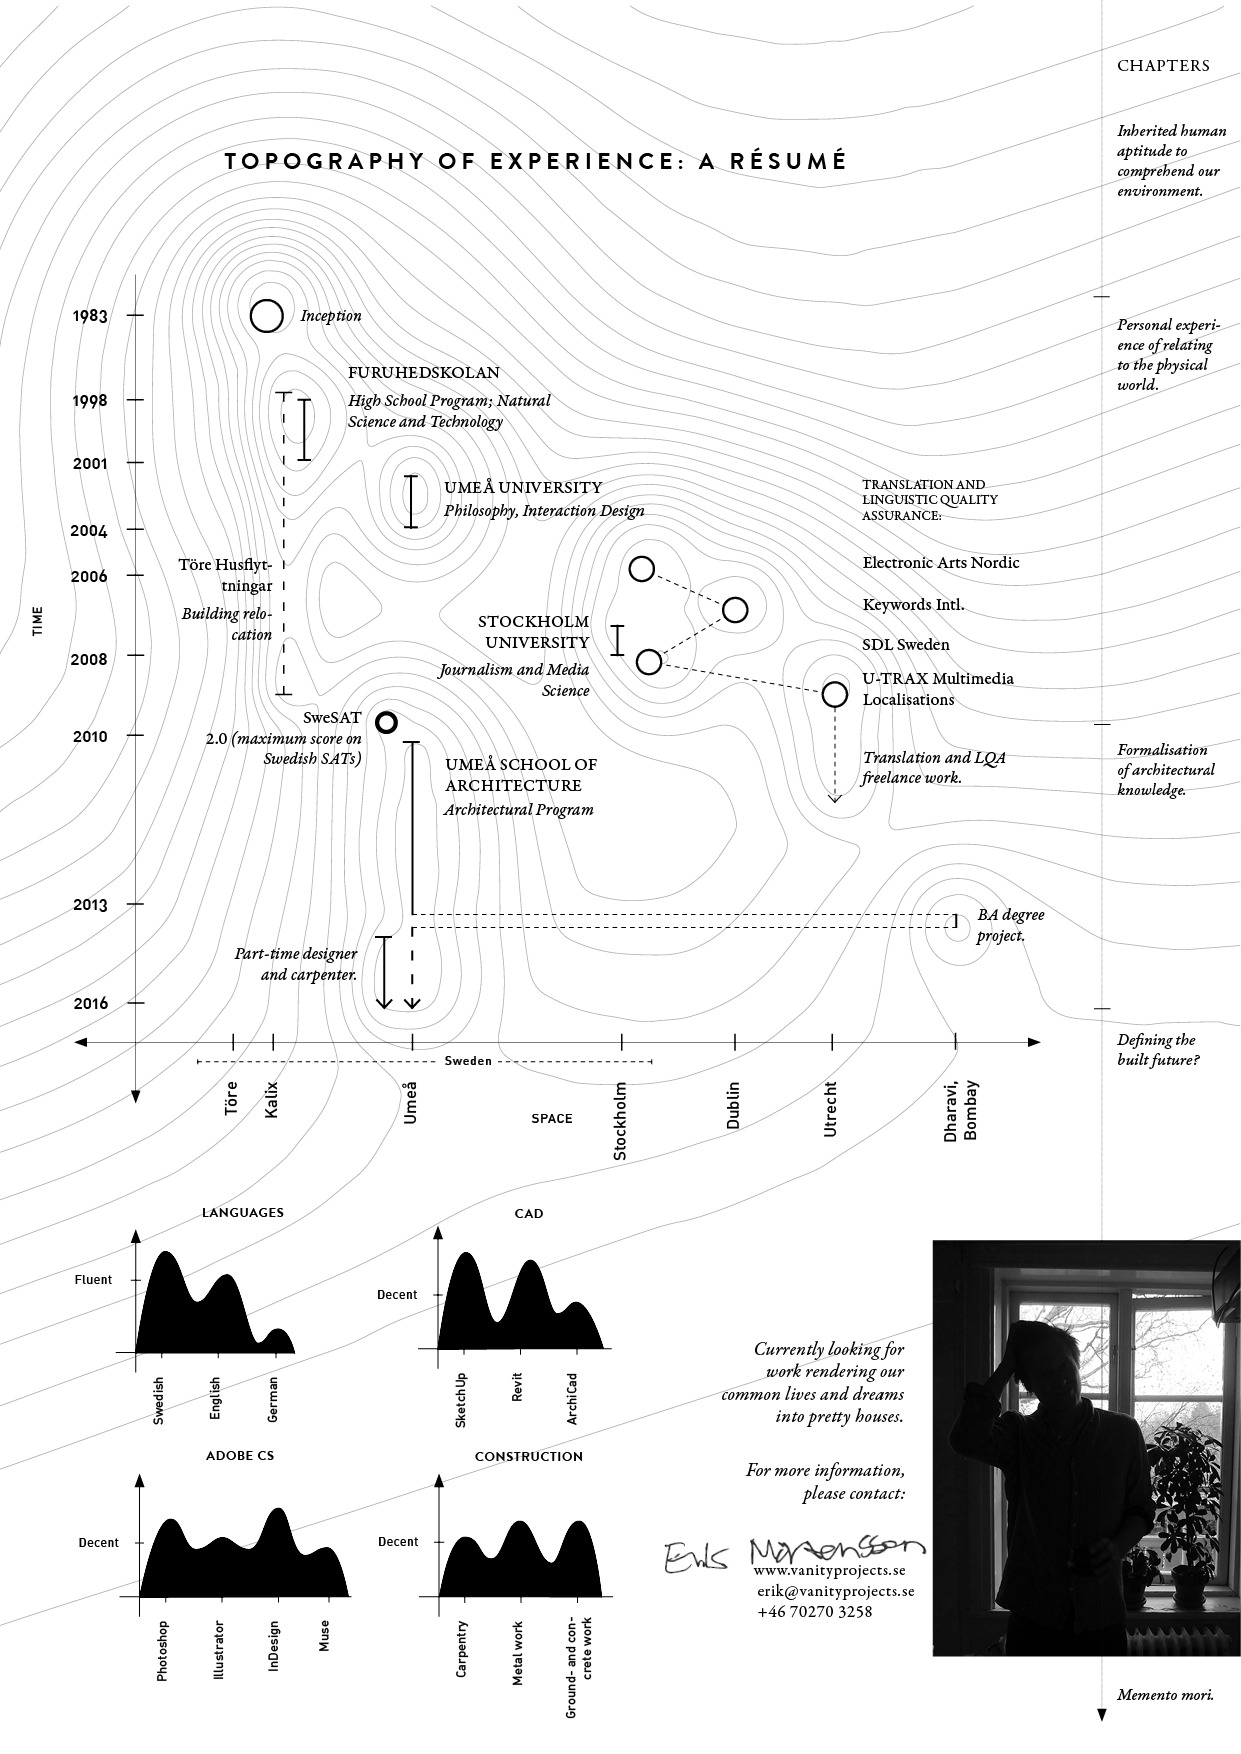 The Top Architecture Rsum Cv Designs Archdaily Small Business Work Design Diagram As Well Submitted By Erik Mrtensson